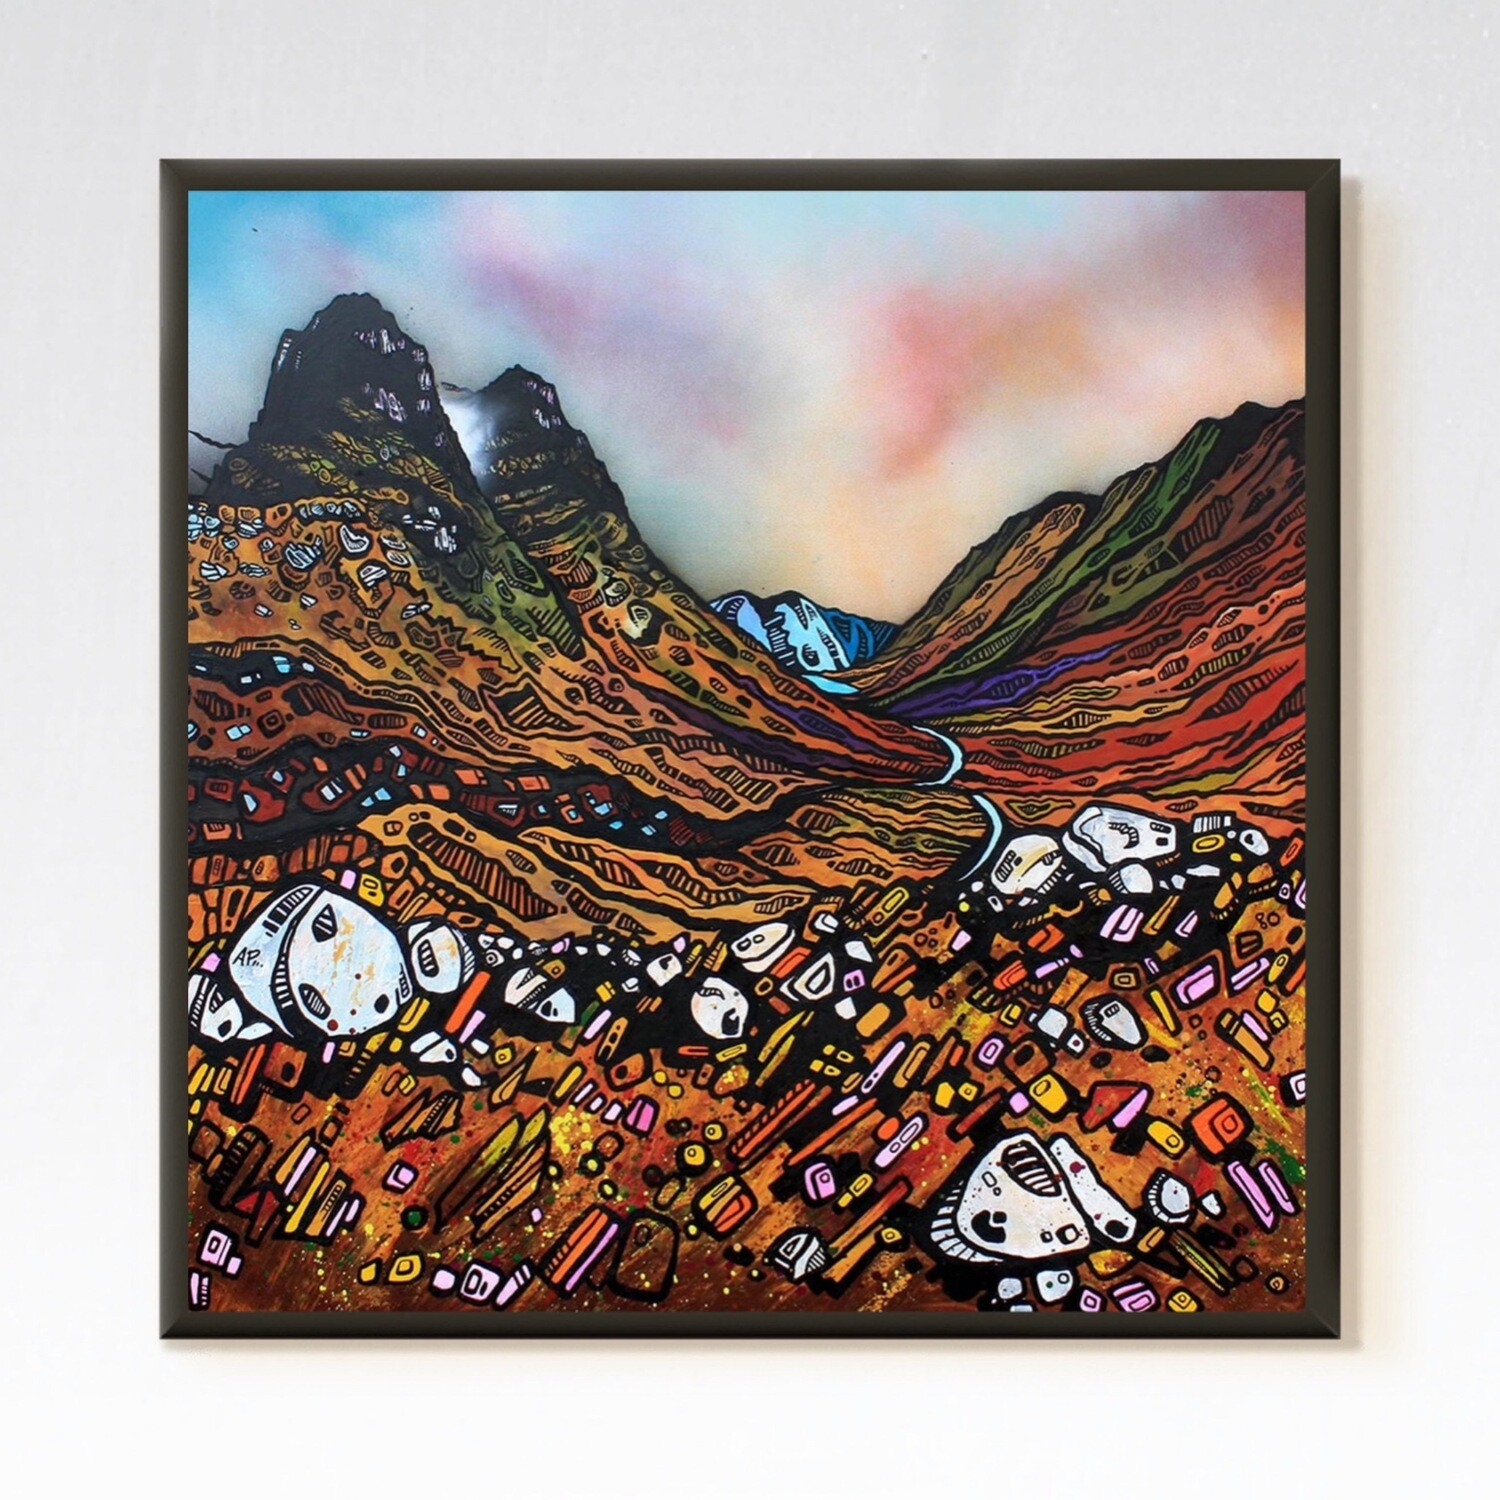 Elements Of Glencoe, The Three Sisters, Highland, Scotland - A landscape